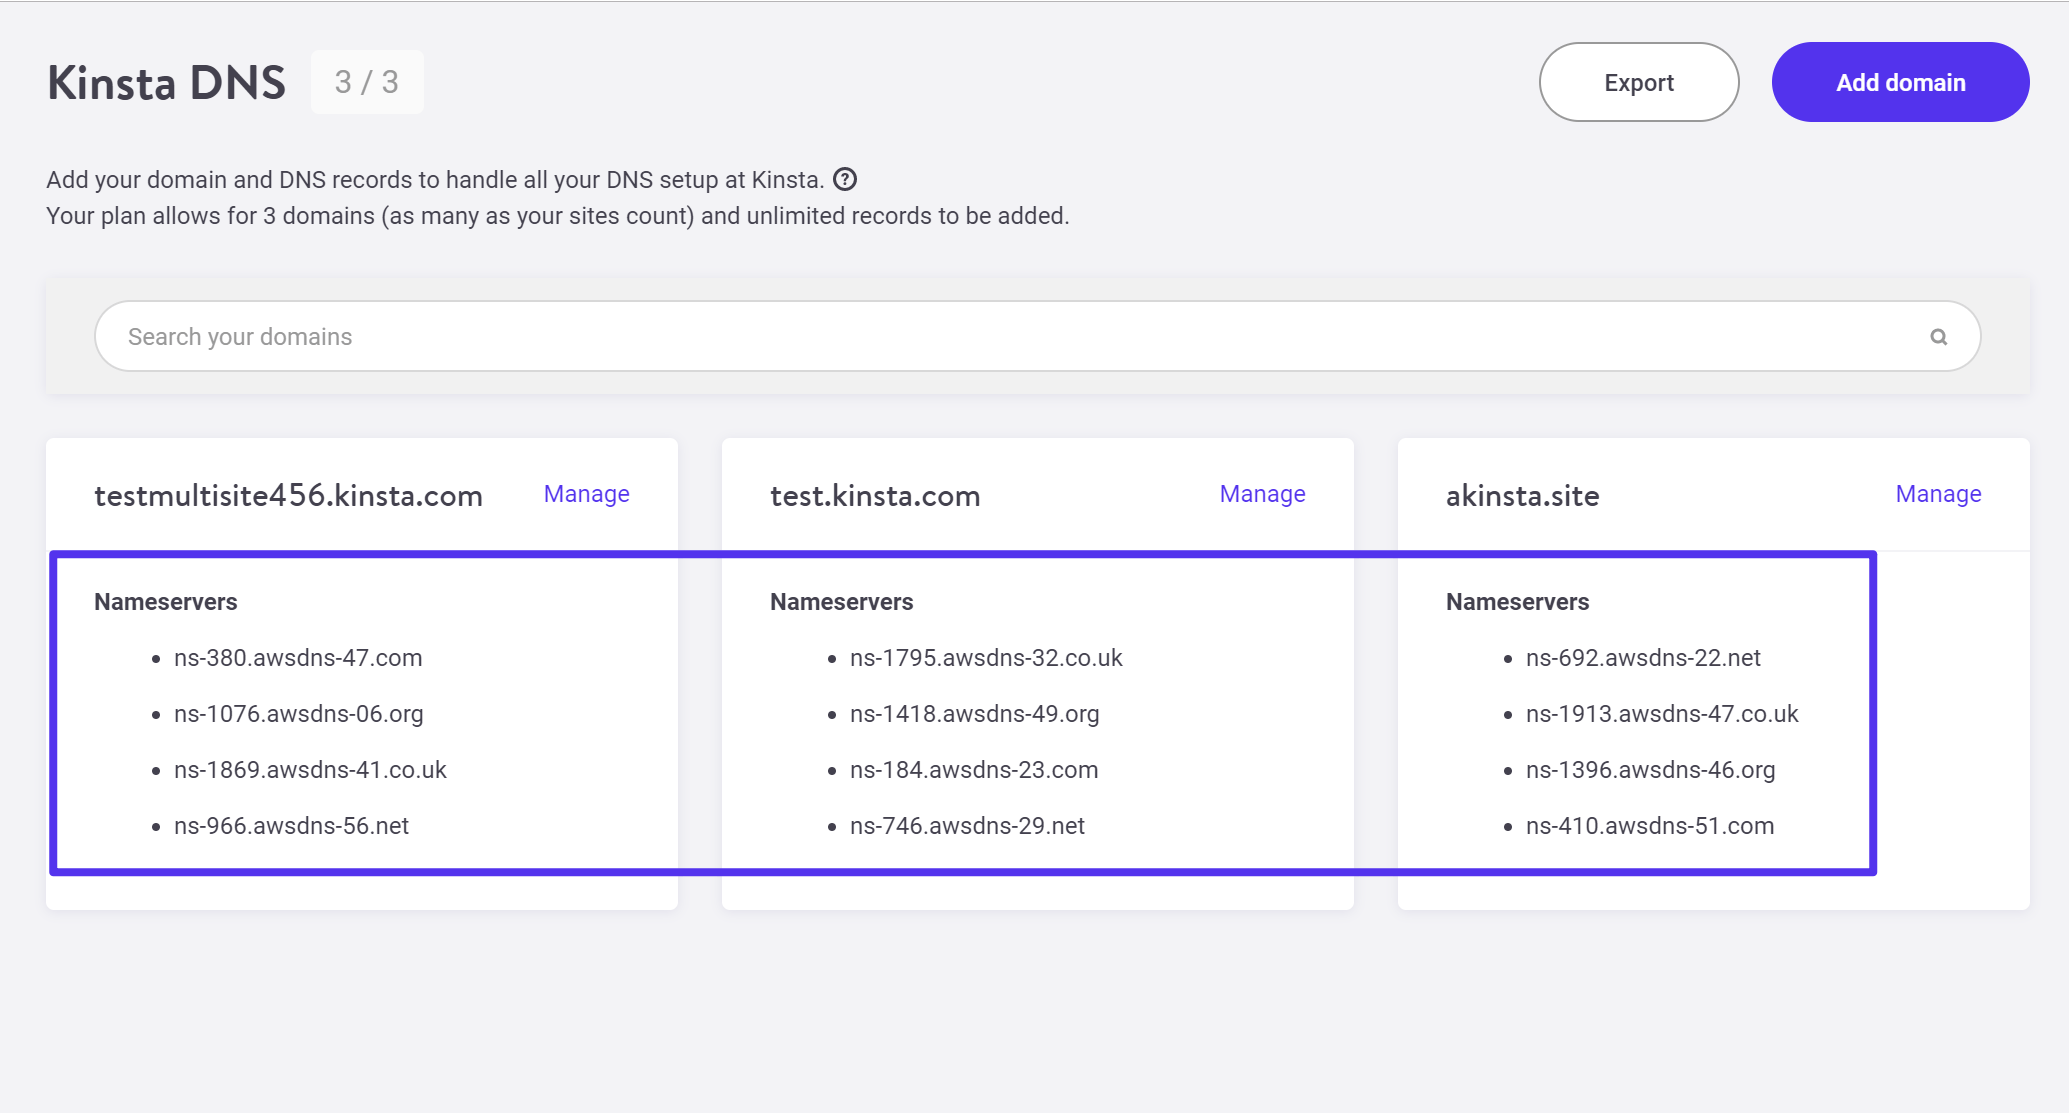 The nameservers in your Kinsta dashboard